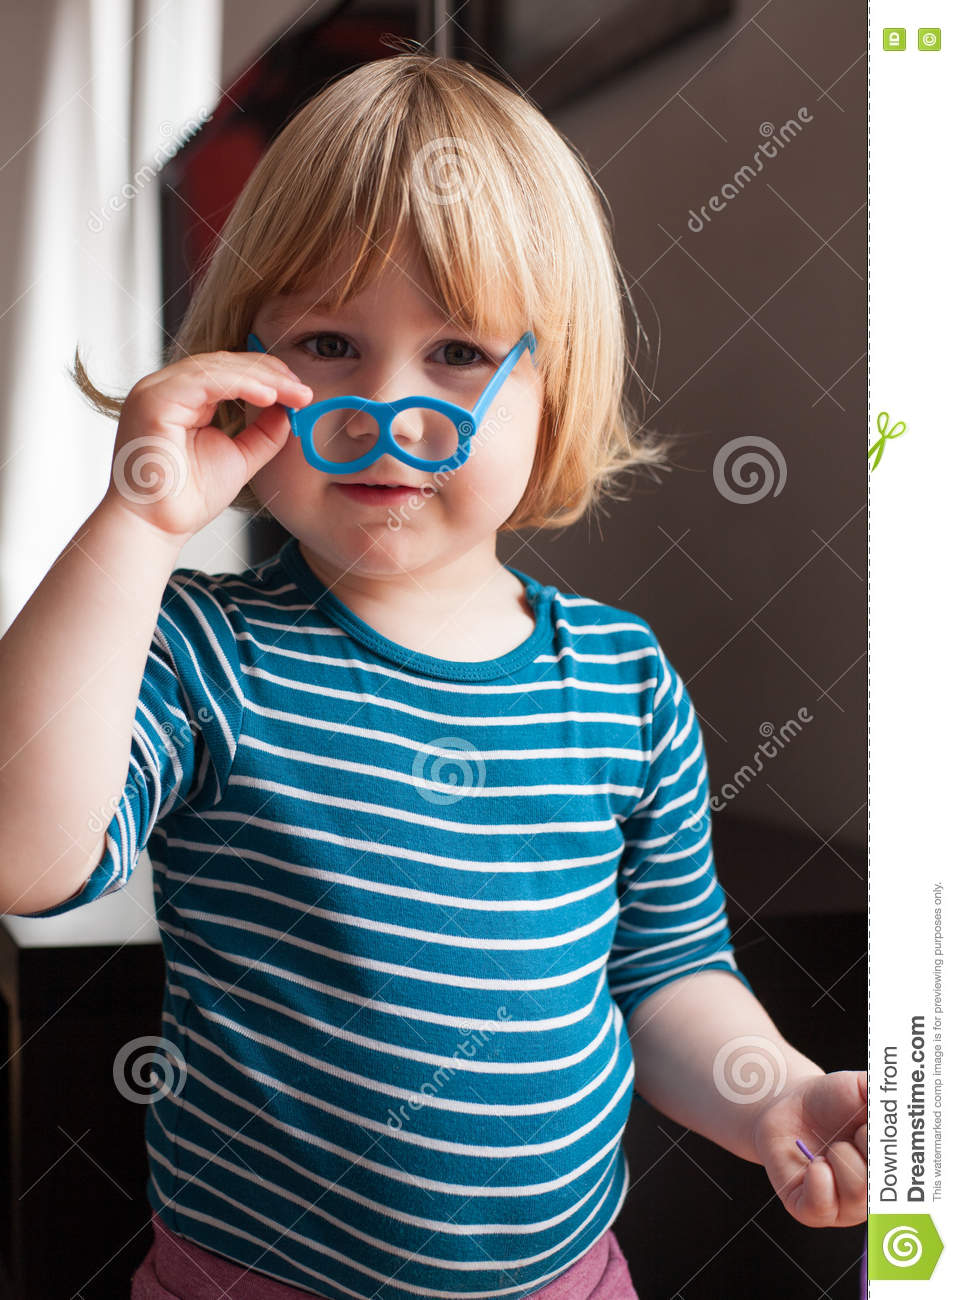 5c989e1f8a73 Funny portrait of blonde two years old child with striped blue and white  sweater inside home playing holding with hand little plastic toy glasses in  face ...